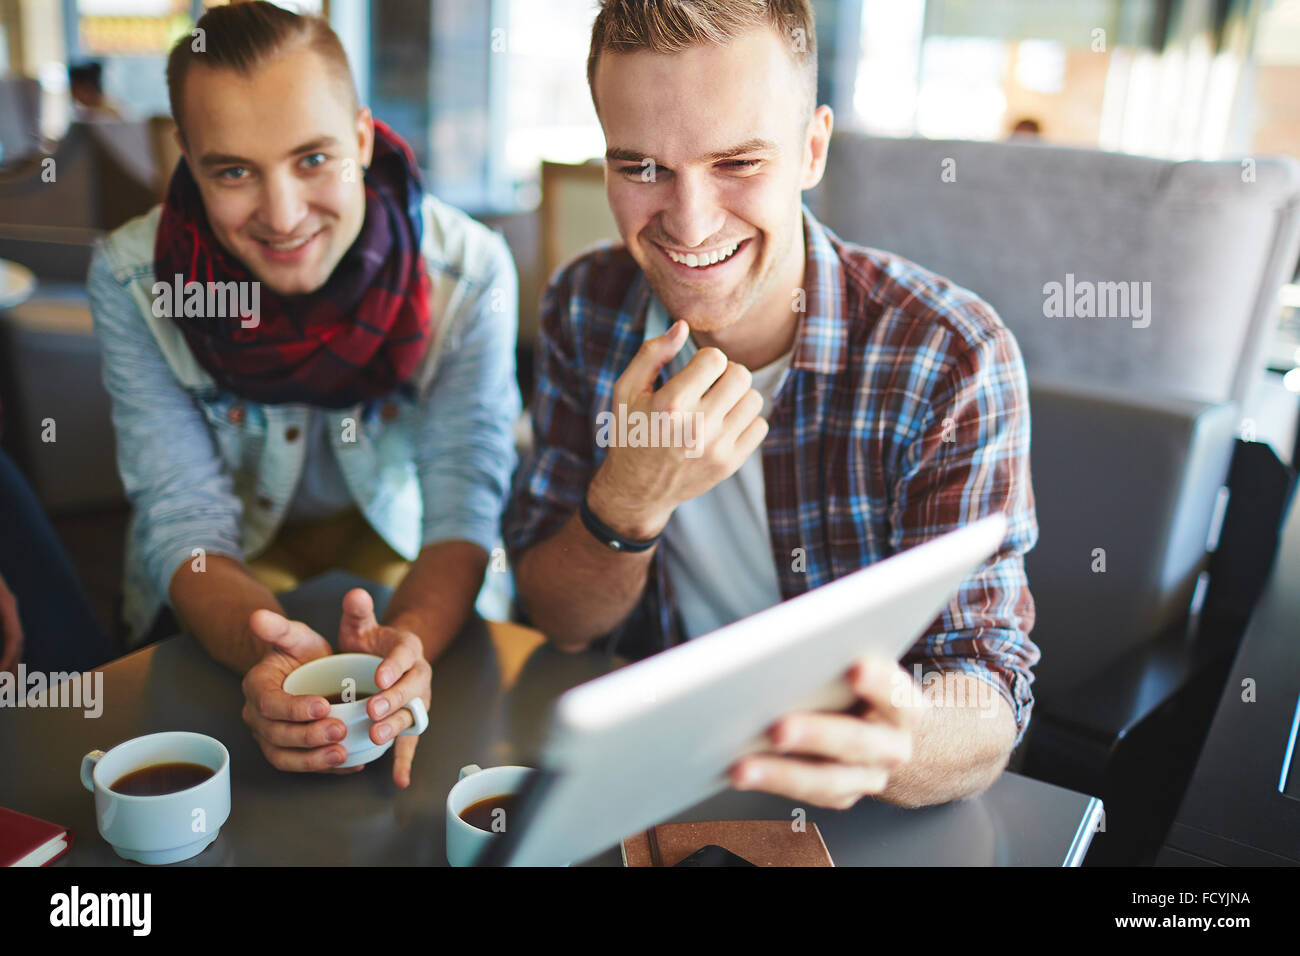 Friendly guys networking and drinking coffee in cafe - Stock Image